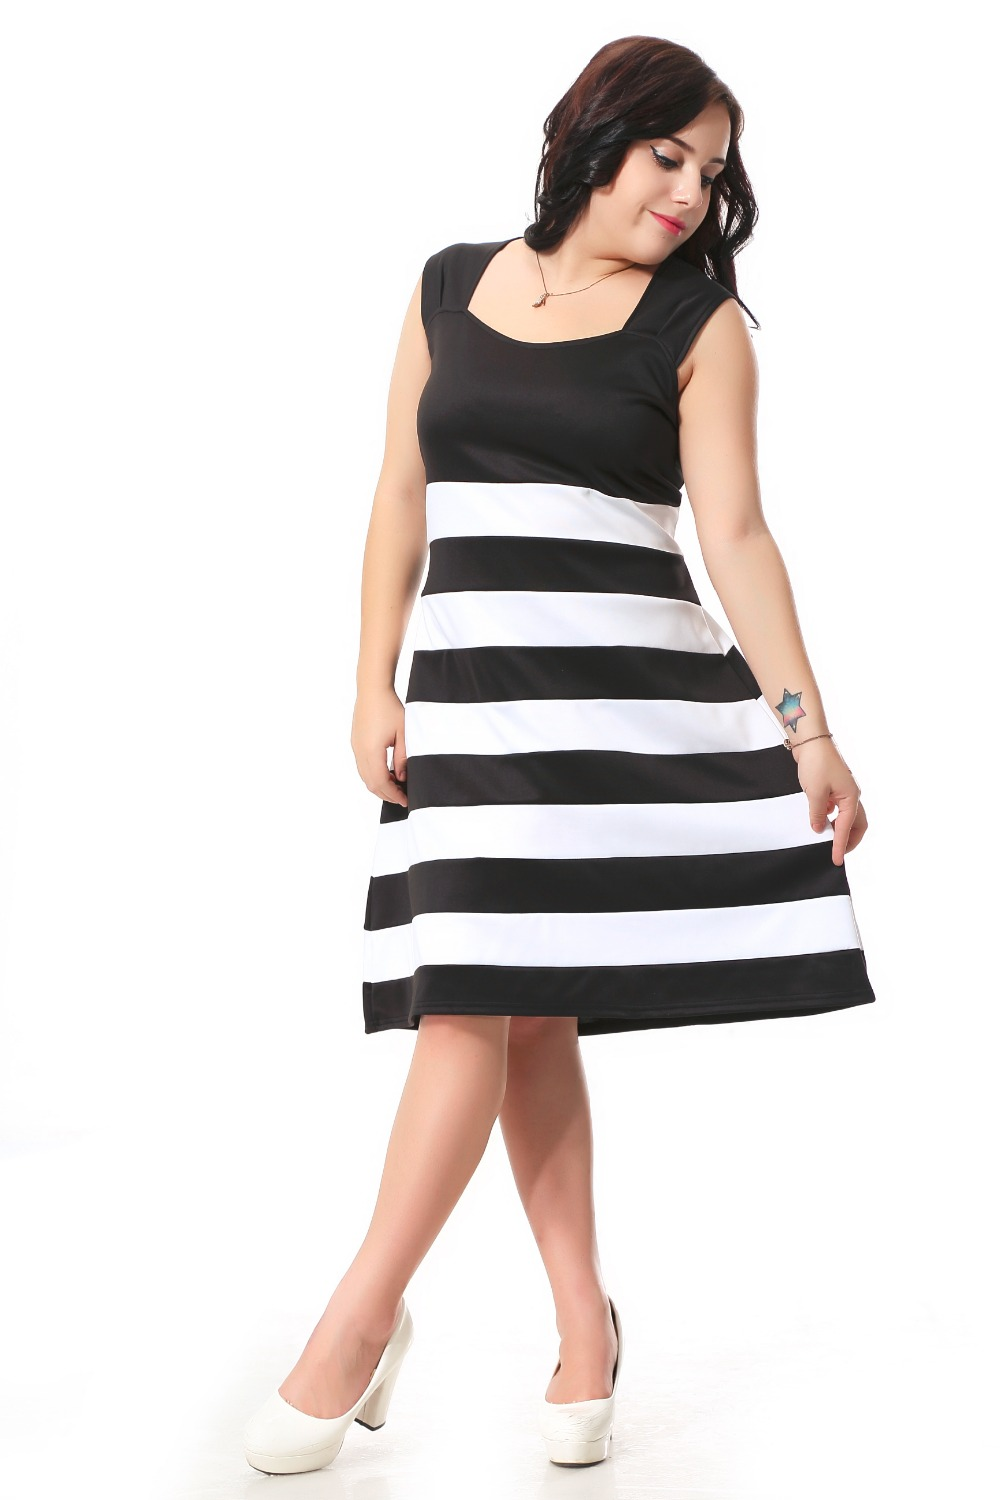 Perfect  Styles Of Necklines Of Womens Garments  Lady Style And Neckline